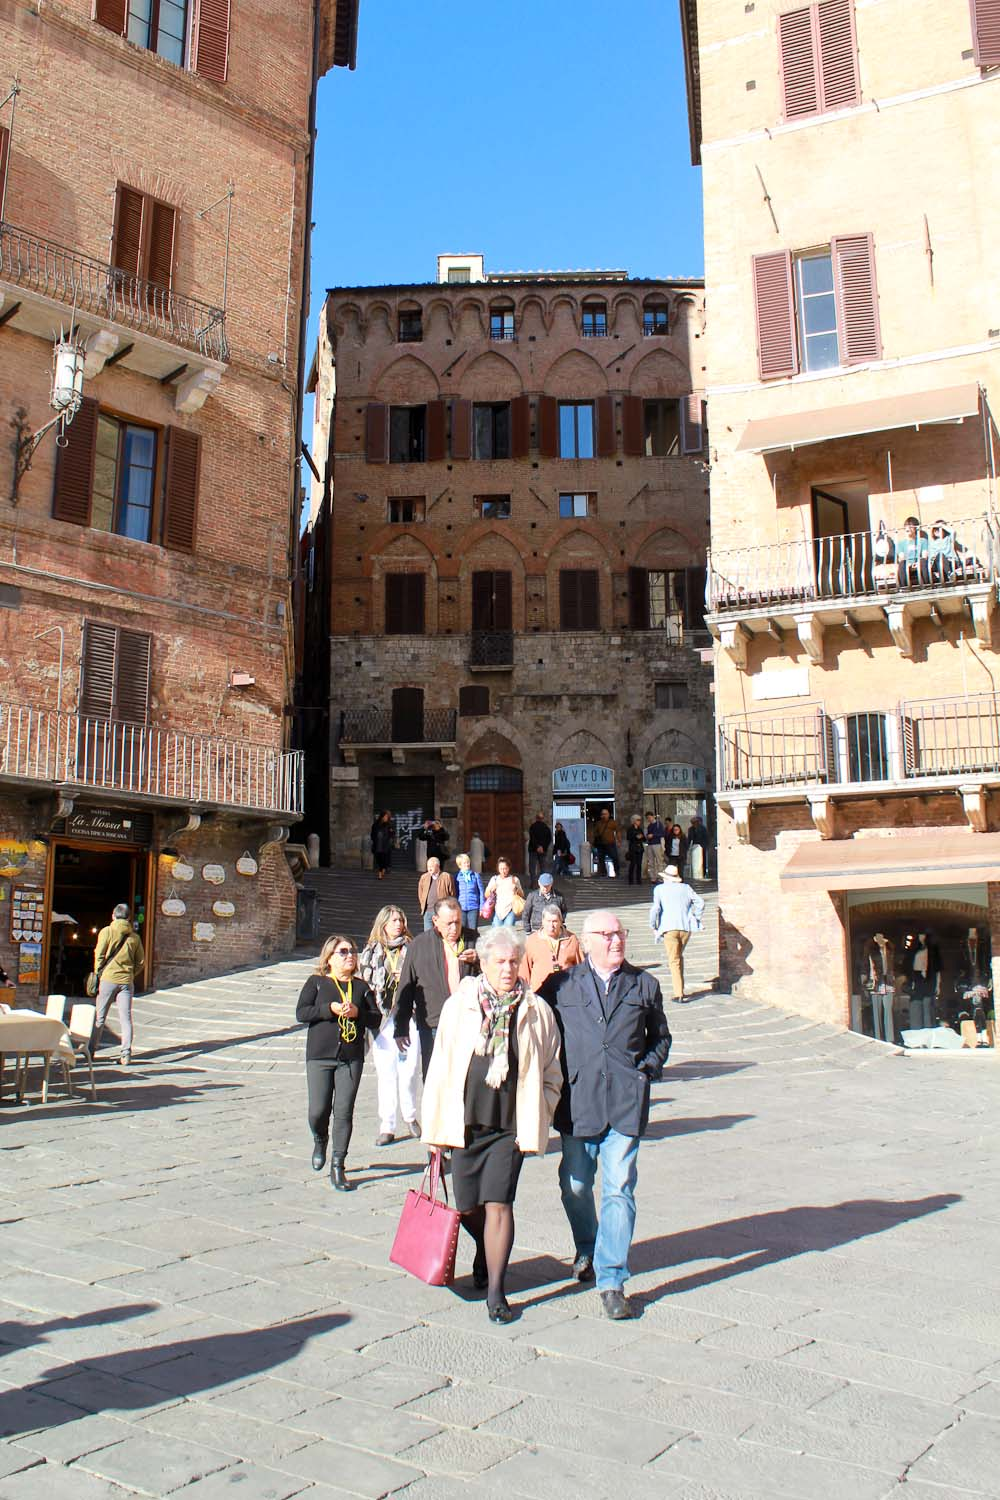 Piazza del Campo in Siena - Italian Notes